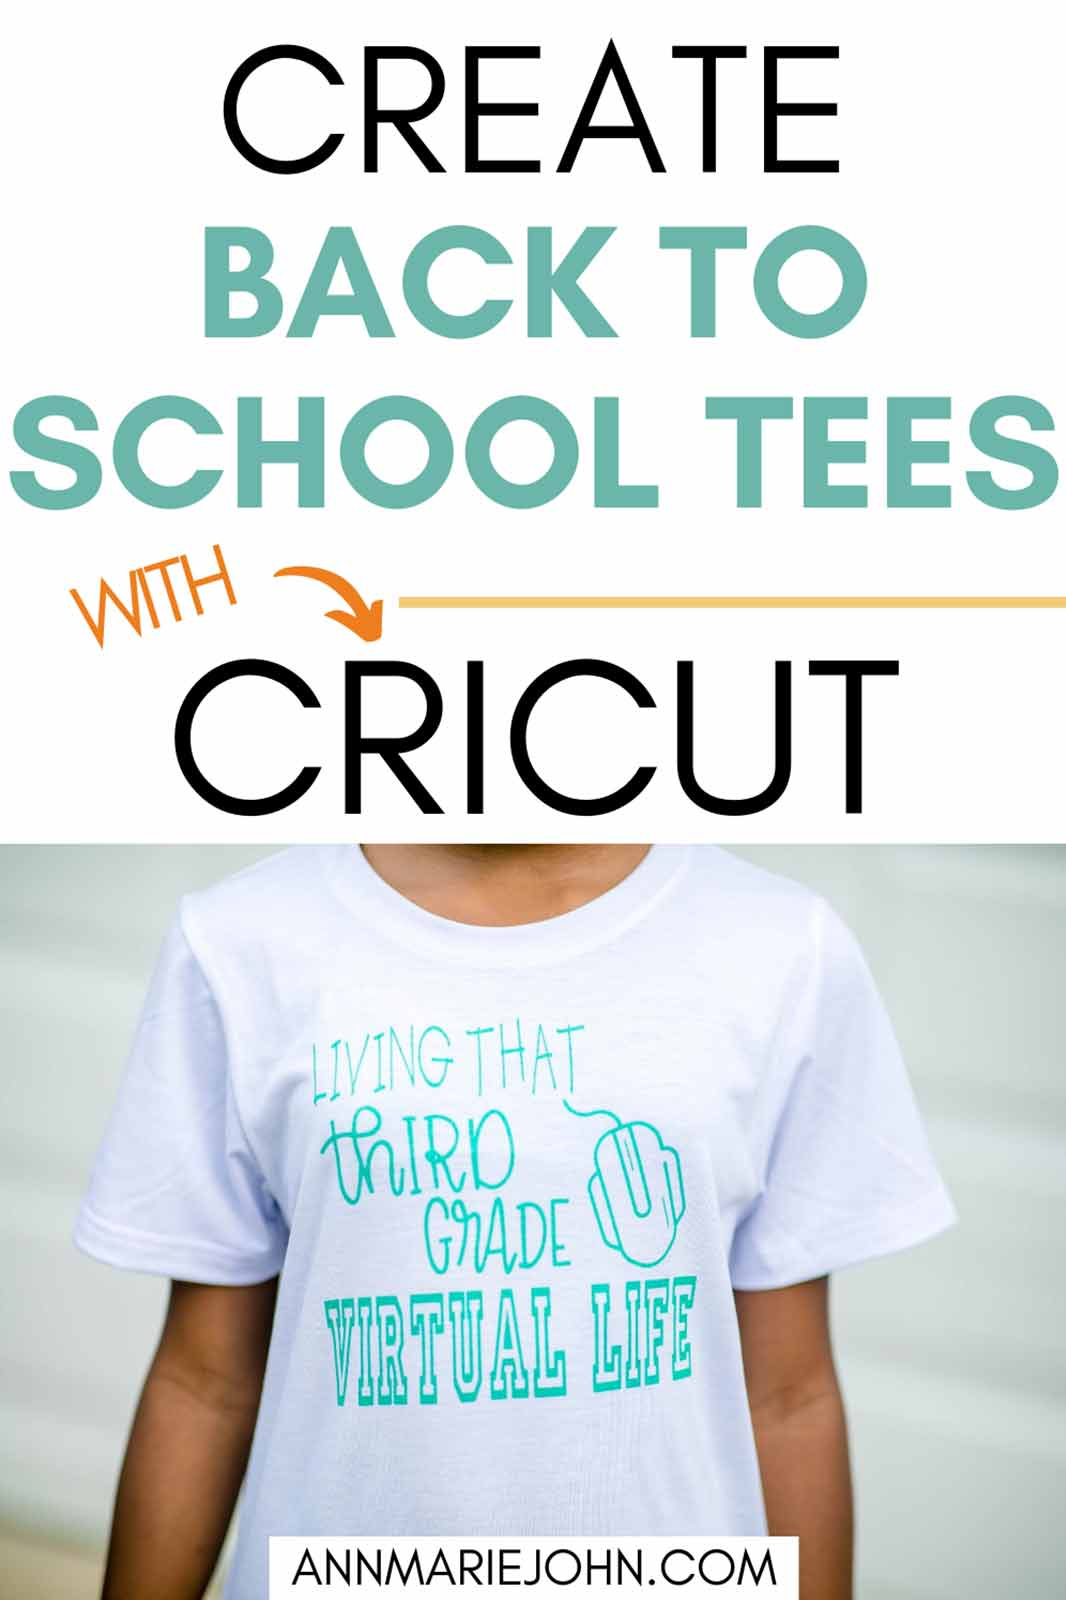 Make Your Own Unique Back to School Tees with Cricut